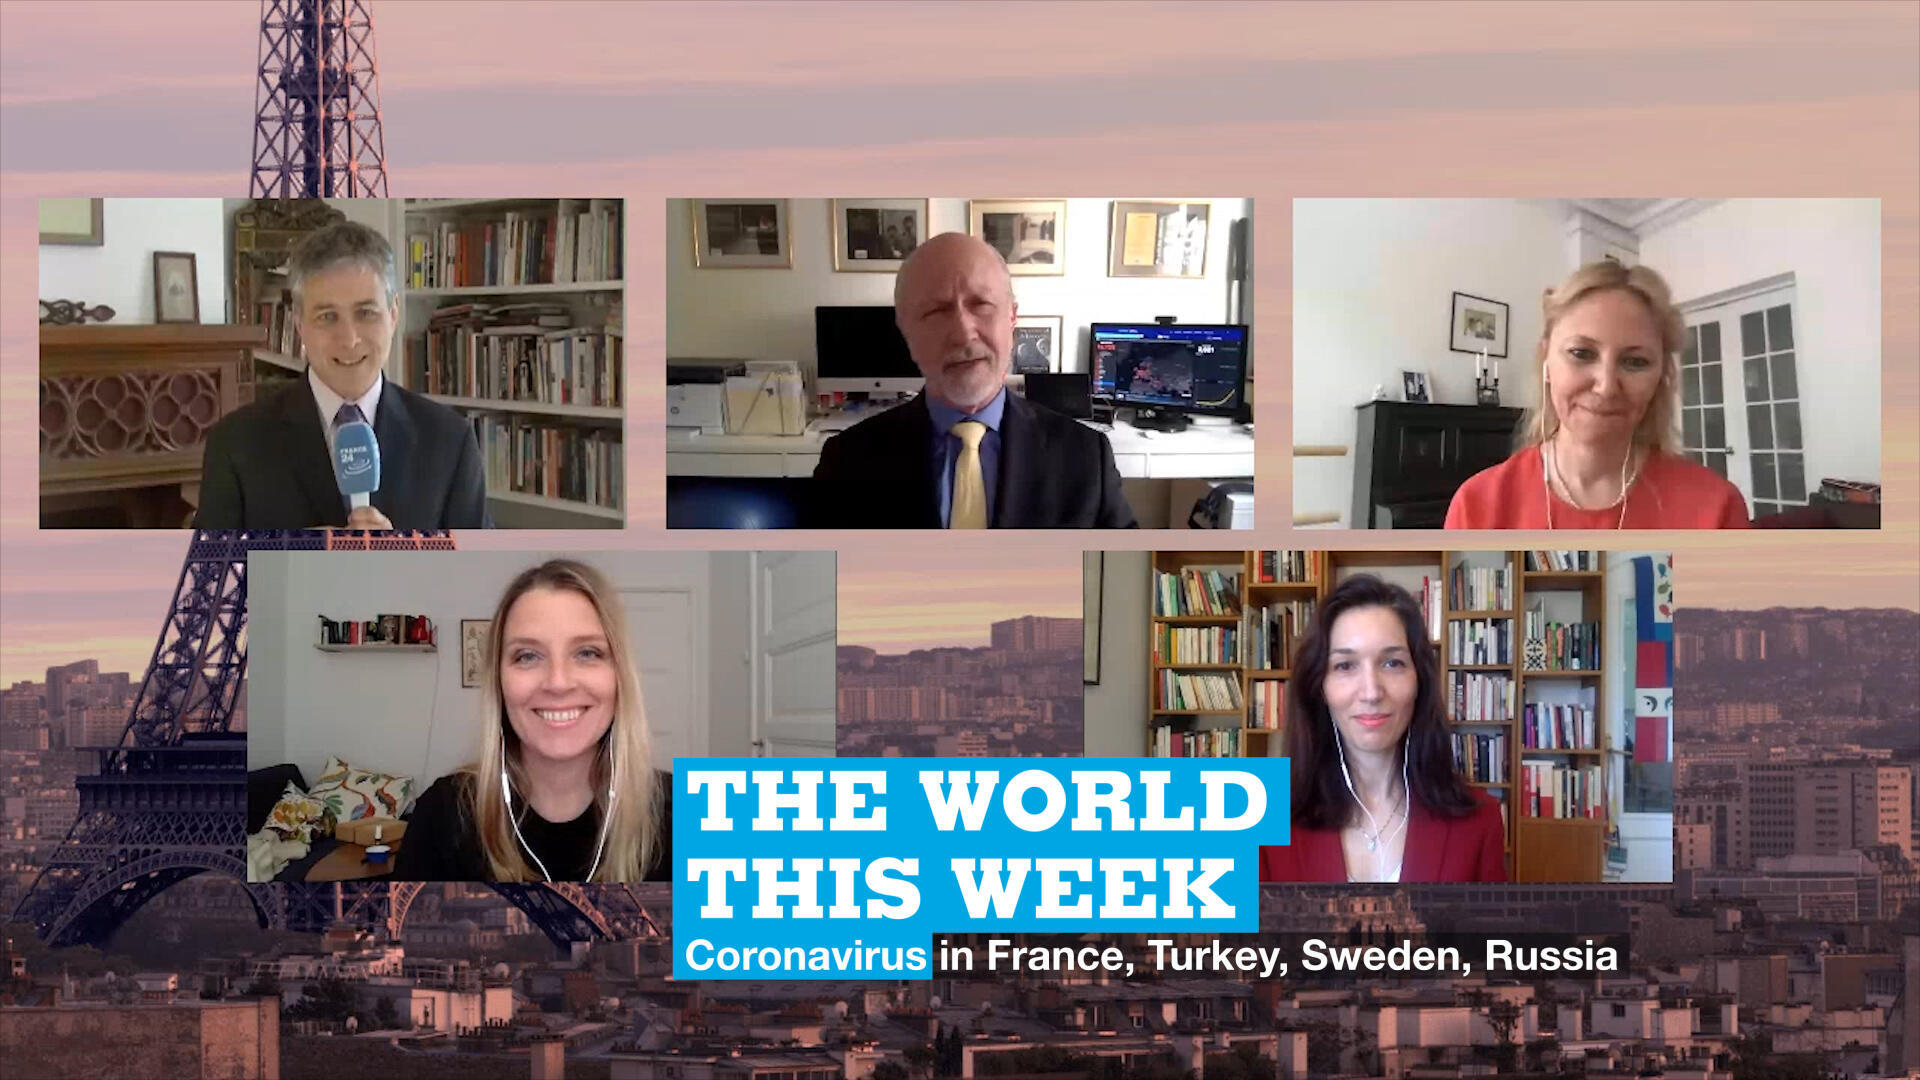 THE WORLD THIS WEEK 0424